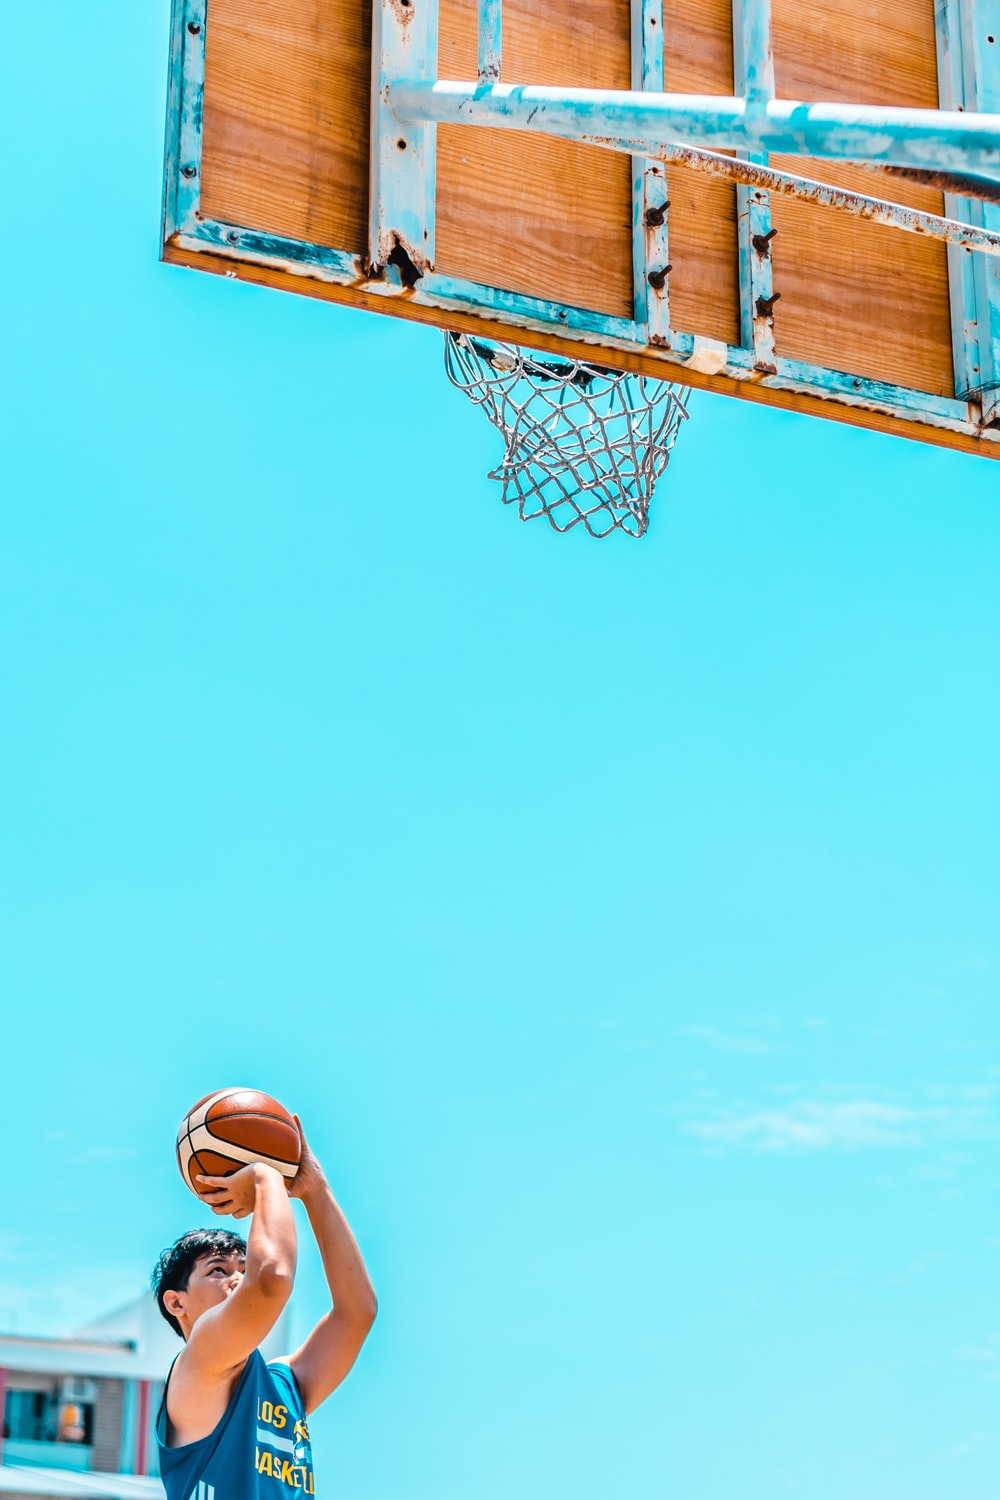 man holding basketball in front of basketball system during daytime